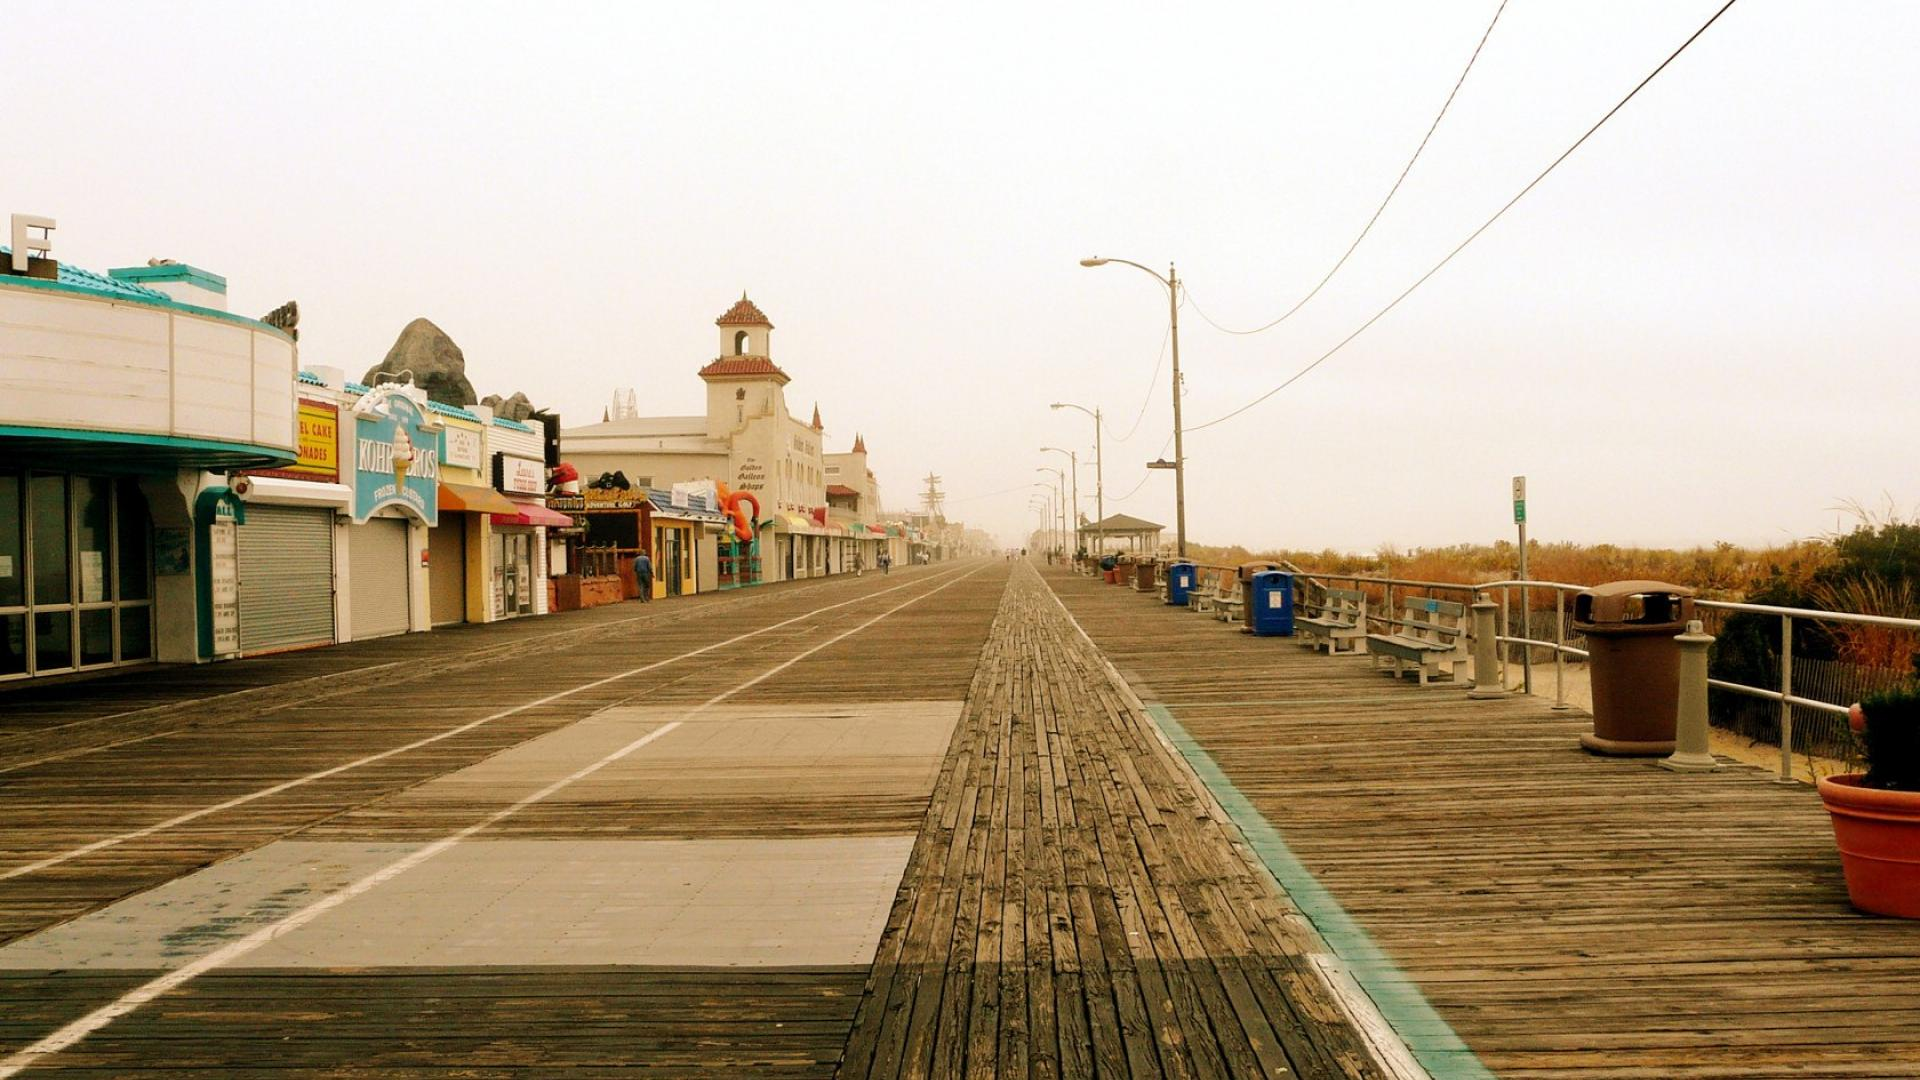 Boardwalk HD